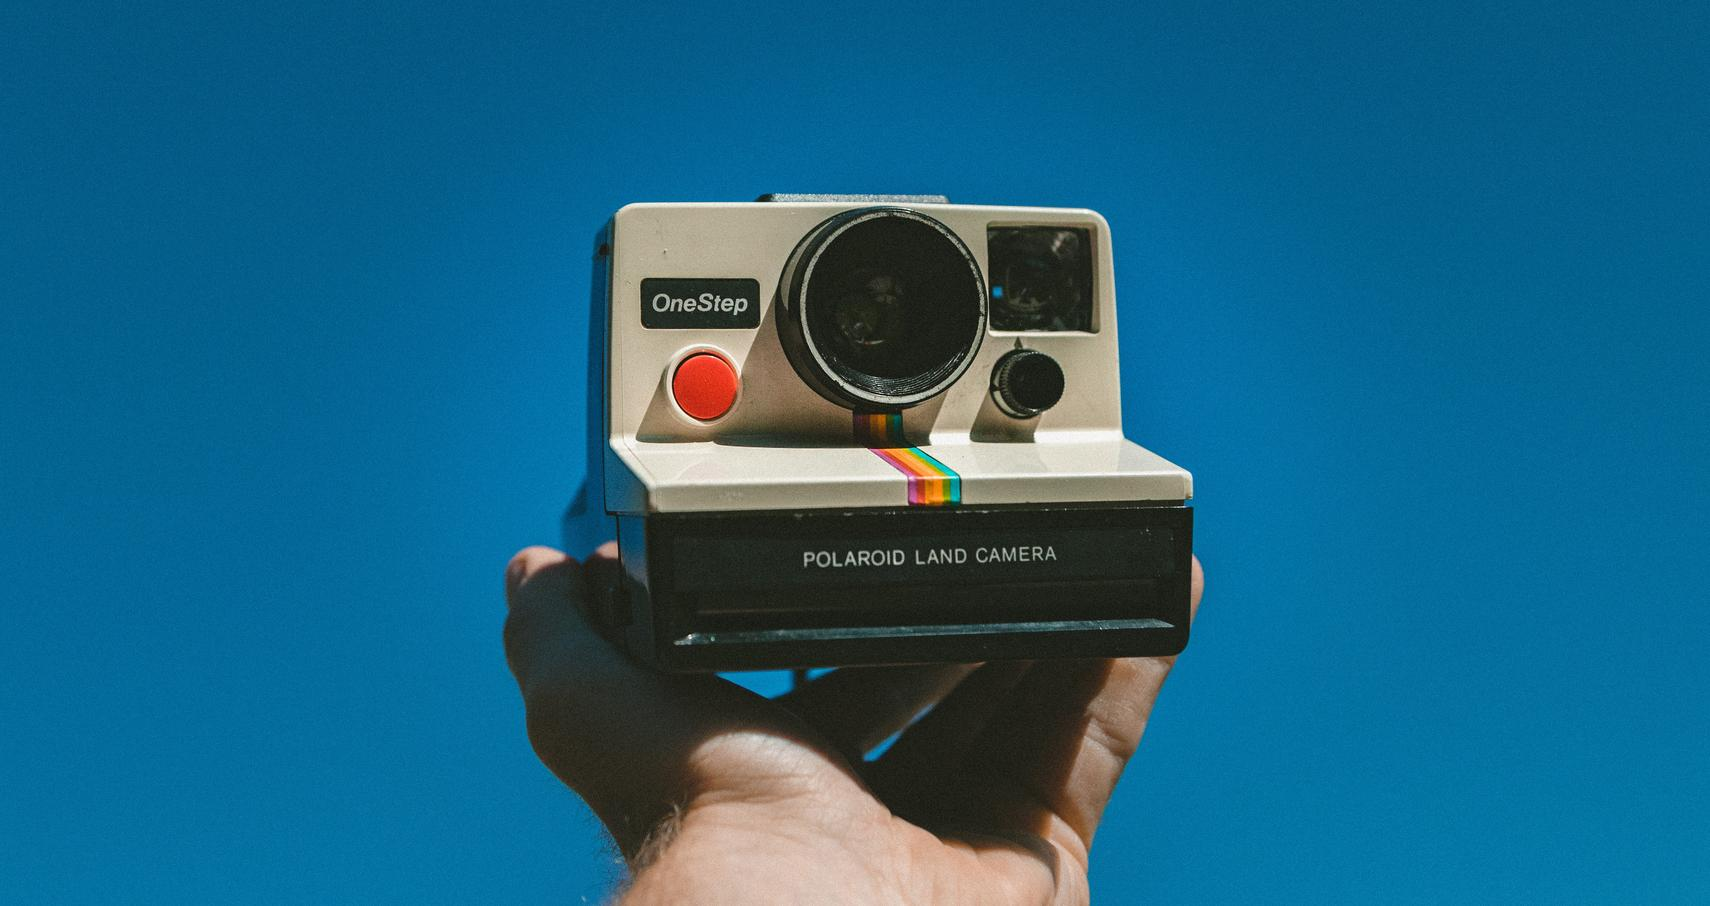 Best Polaroid Camera 2019 Best Instant Cameras 2019: Fujifilm camera, Polaroid cameras, and